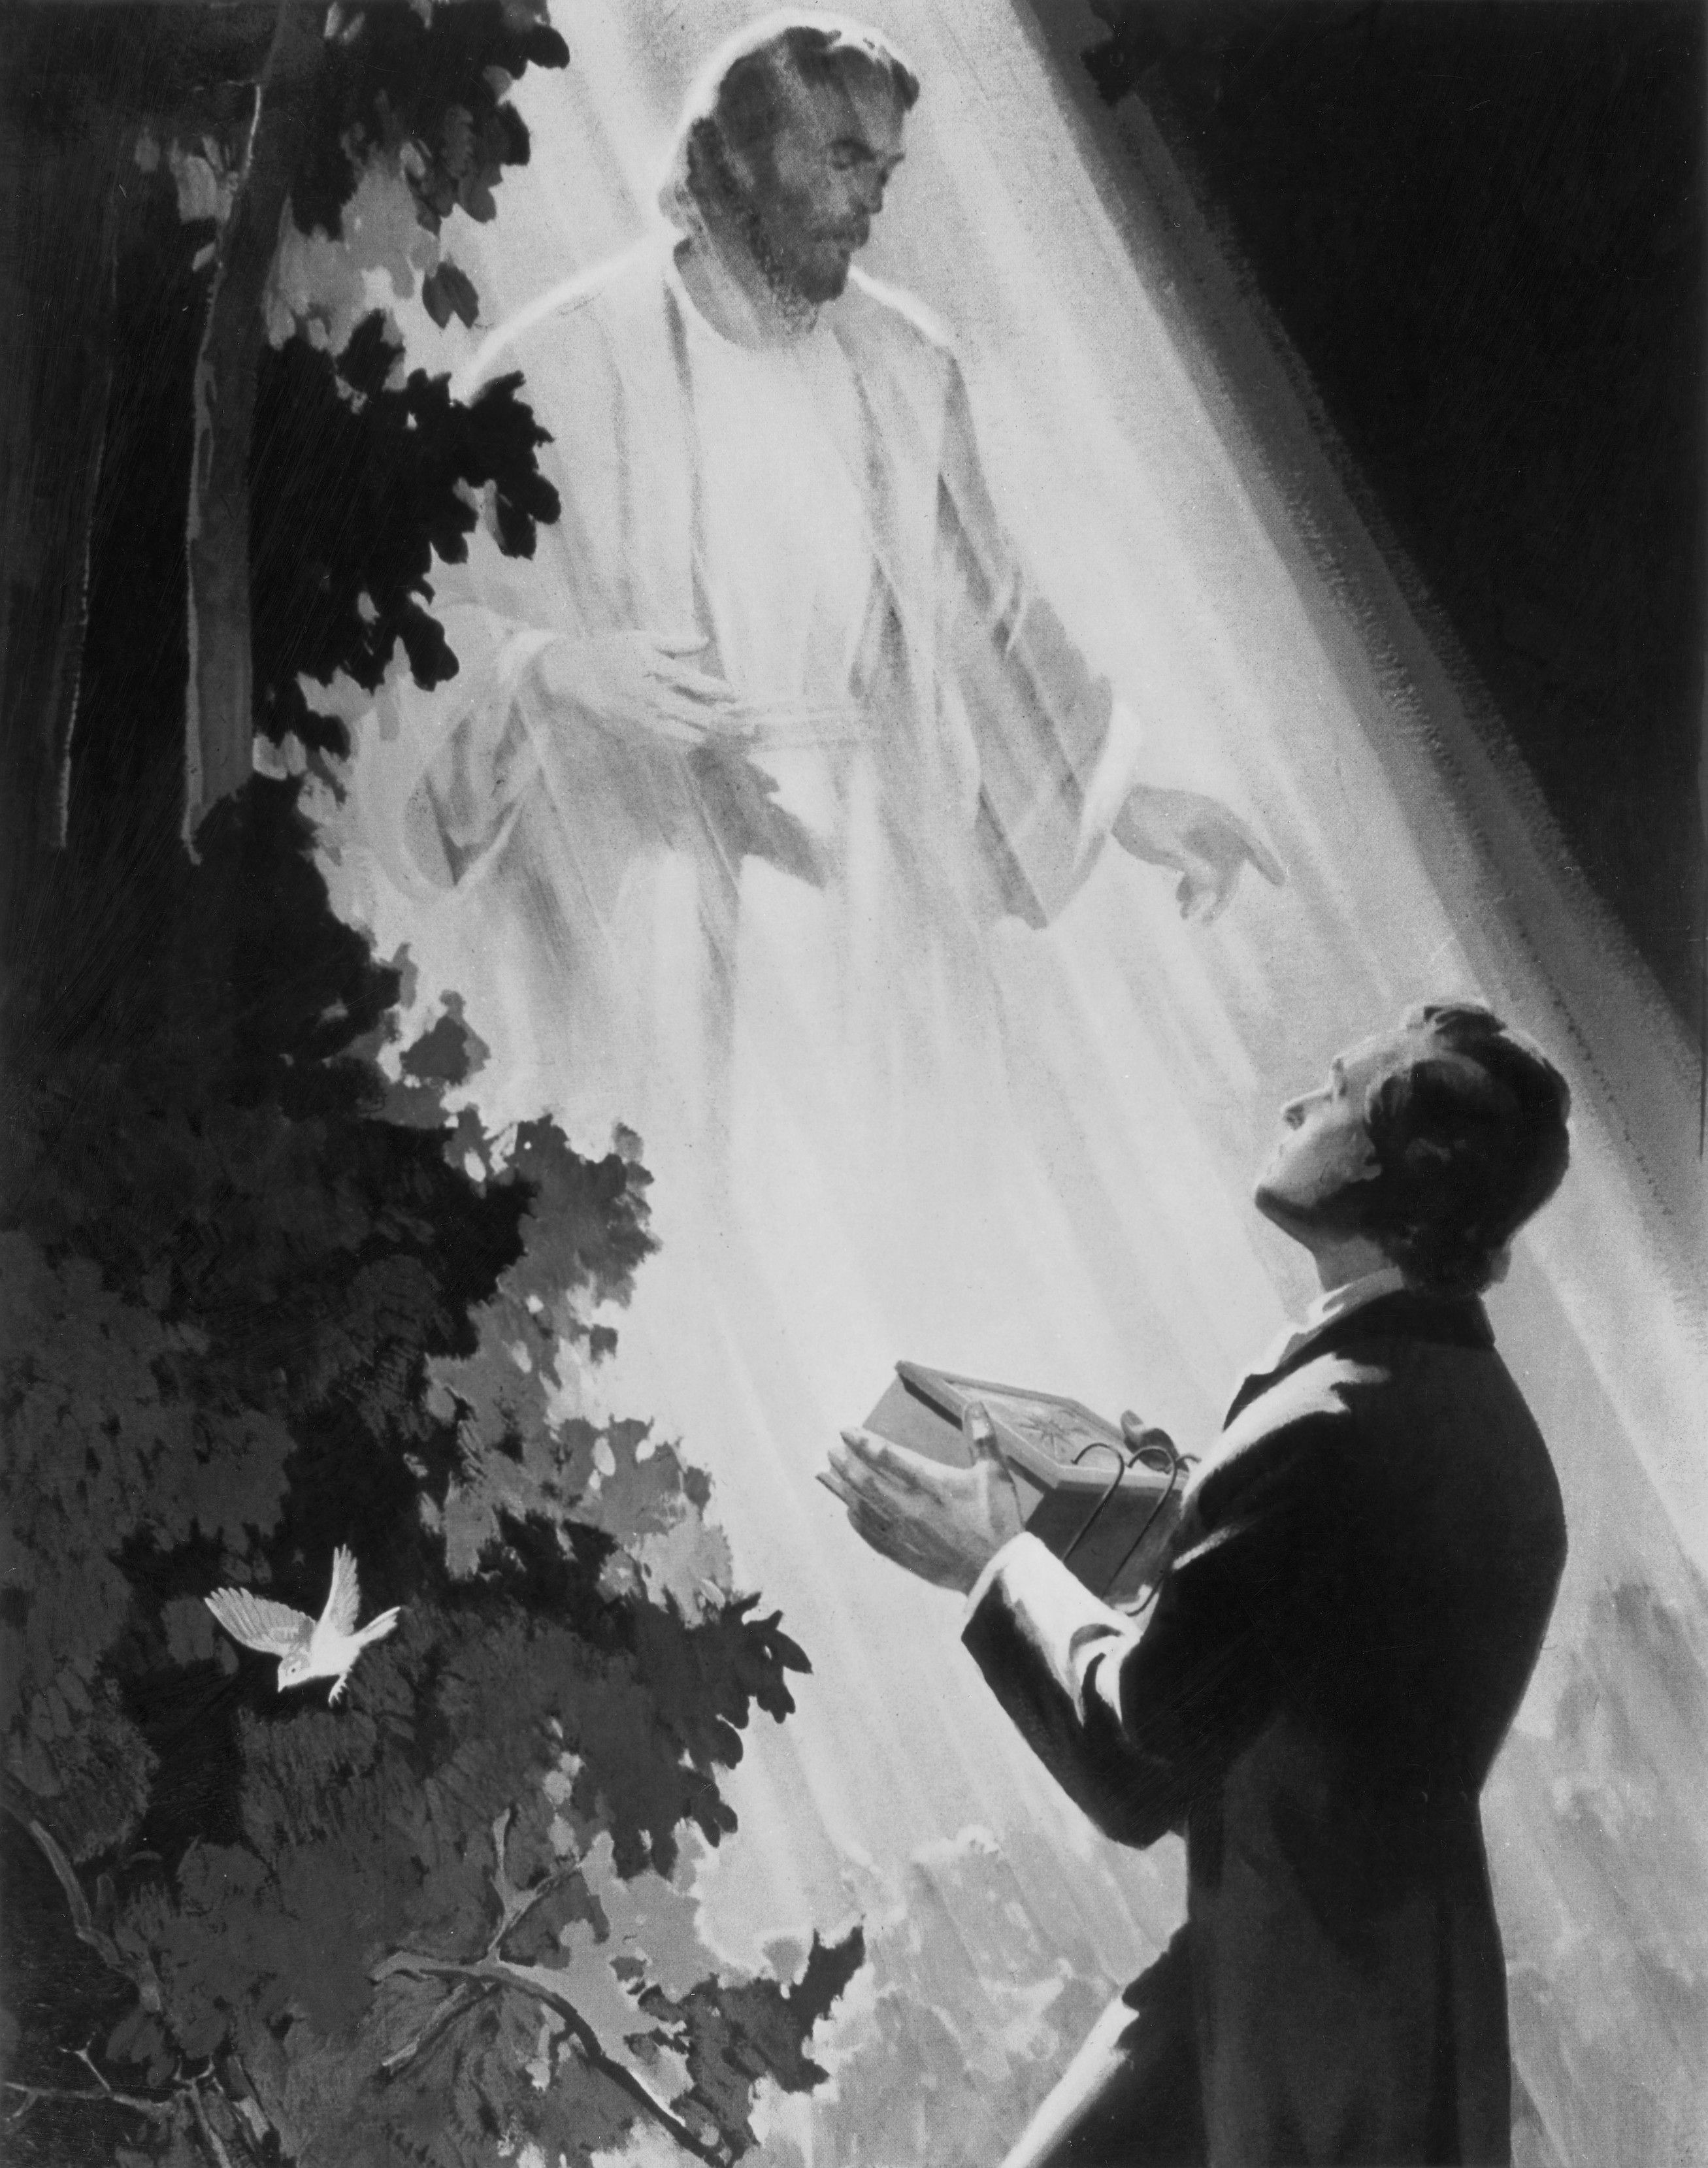 Joseph Smith Receives the Golden Plates, by Edward T. Grigware